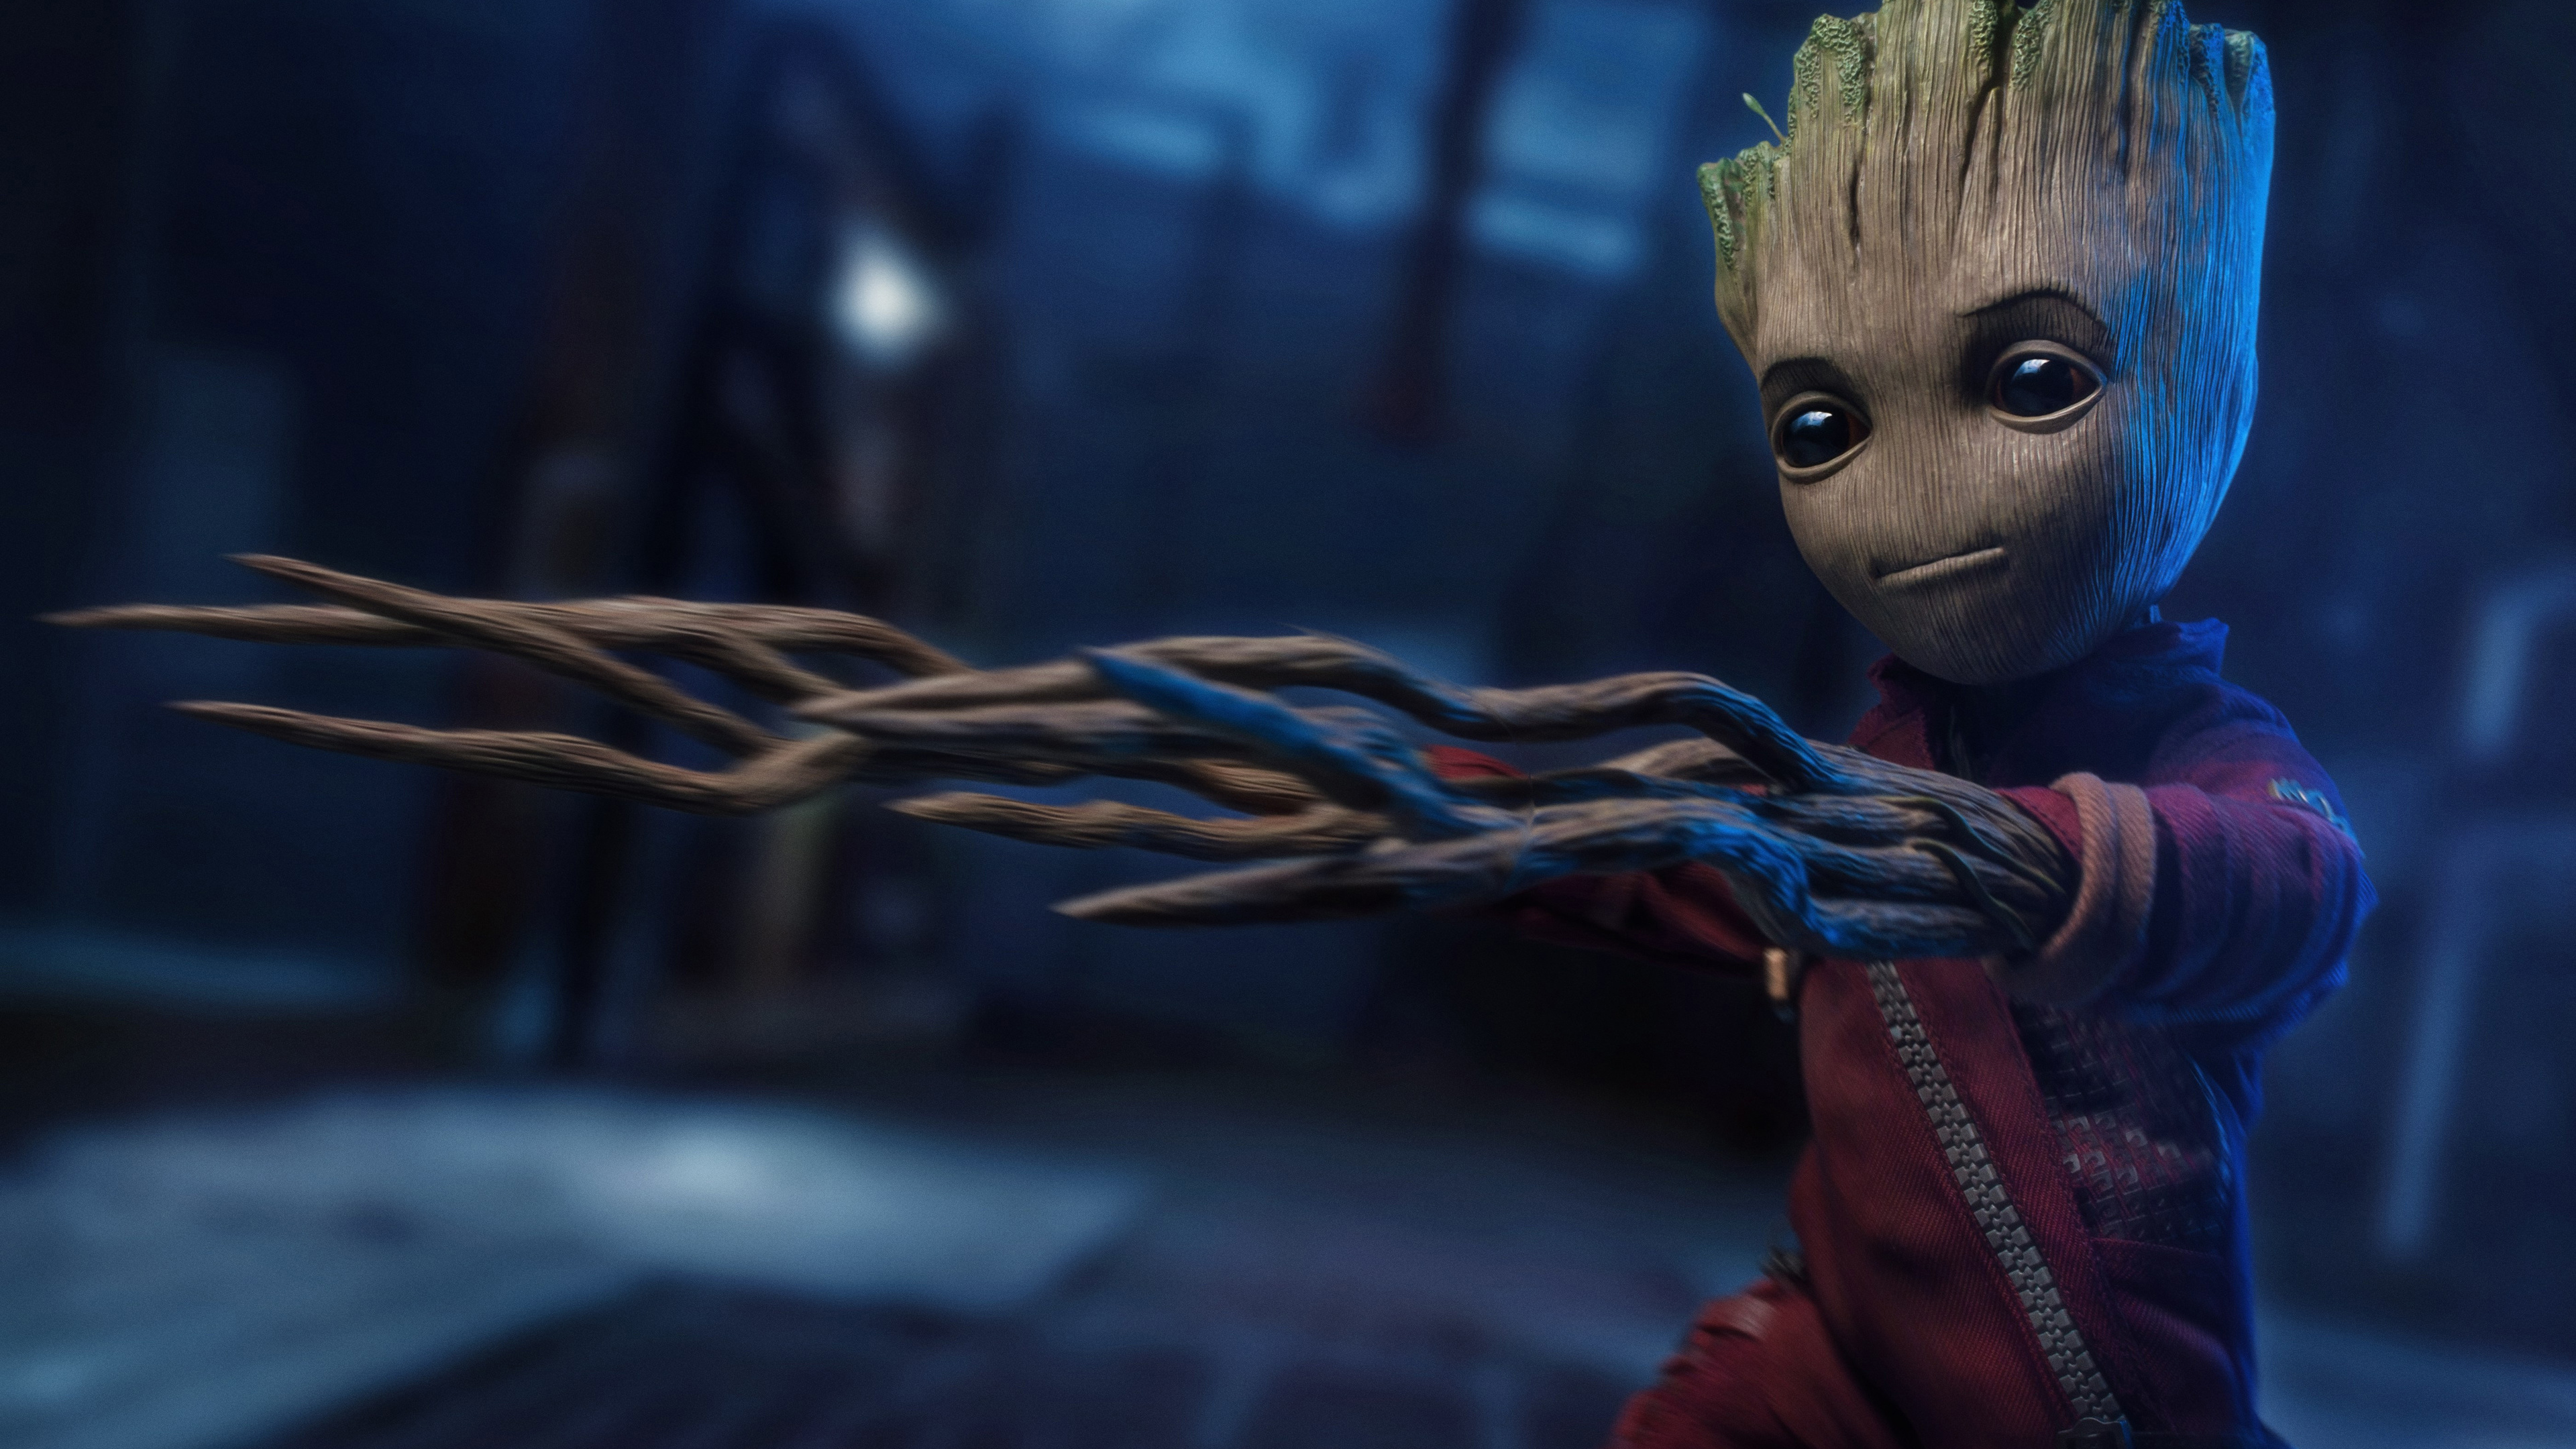 Baby Groot 5k 2018 Superheroes Wallpapers, Hd-wallpapers